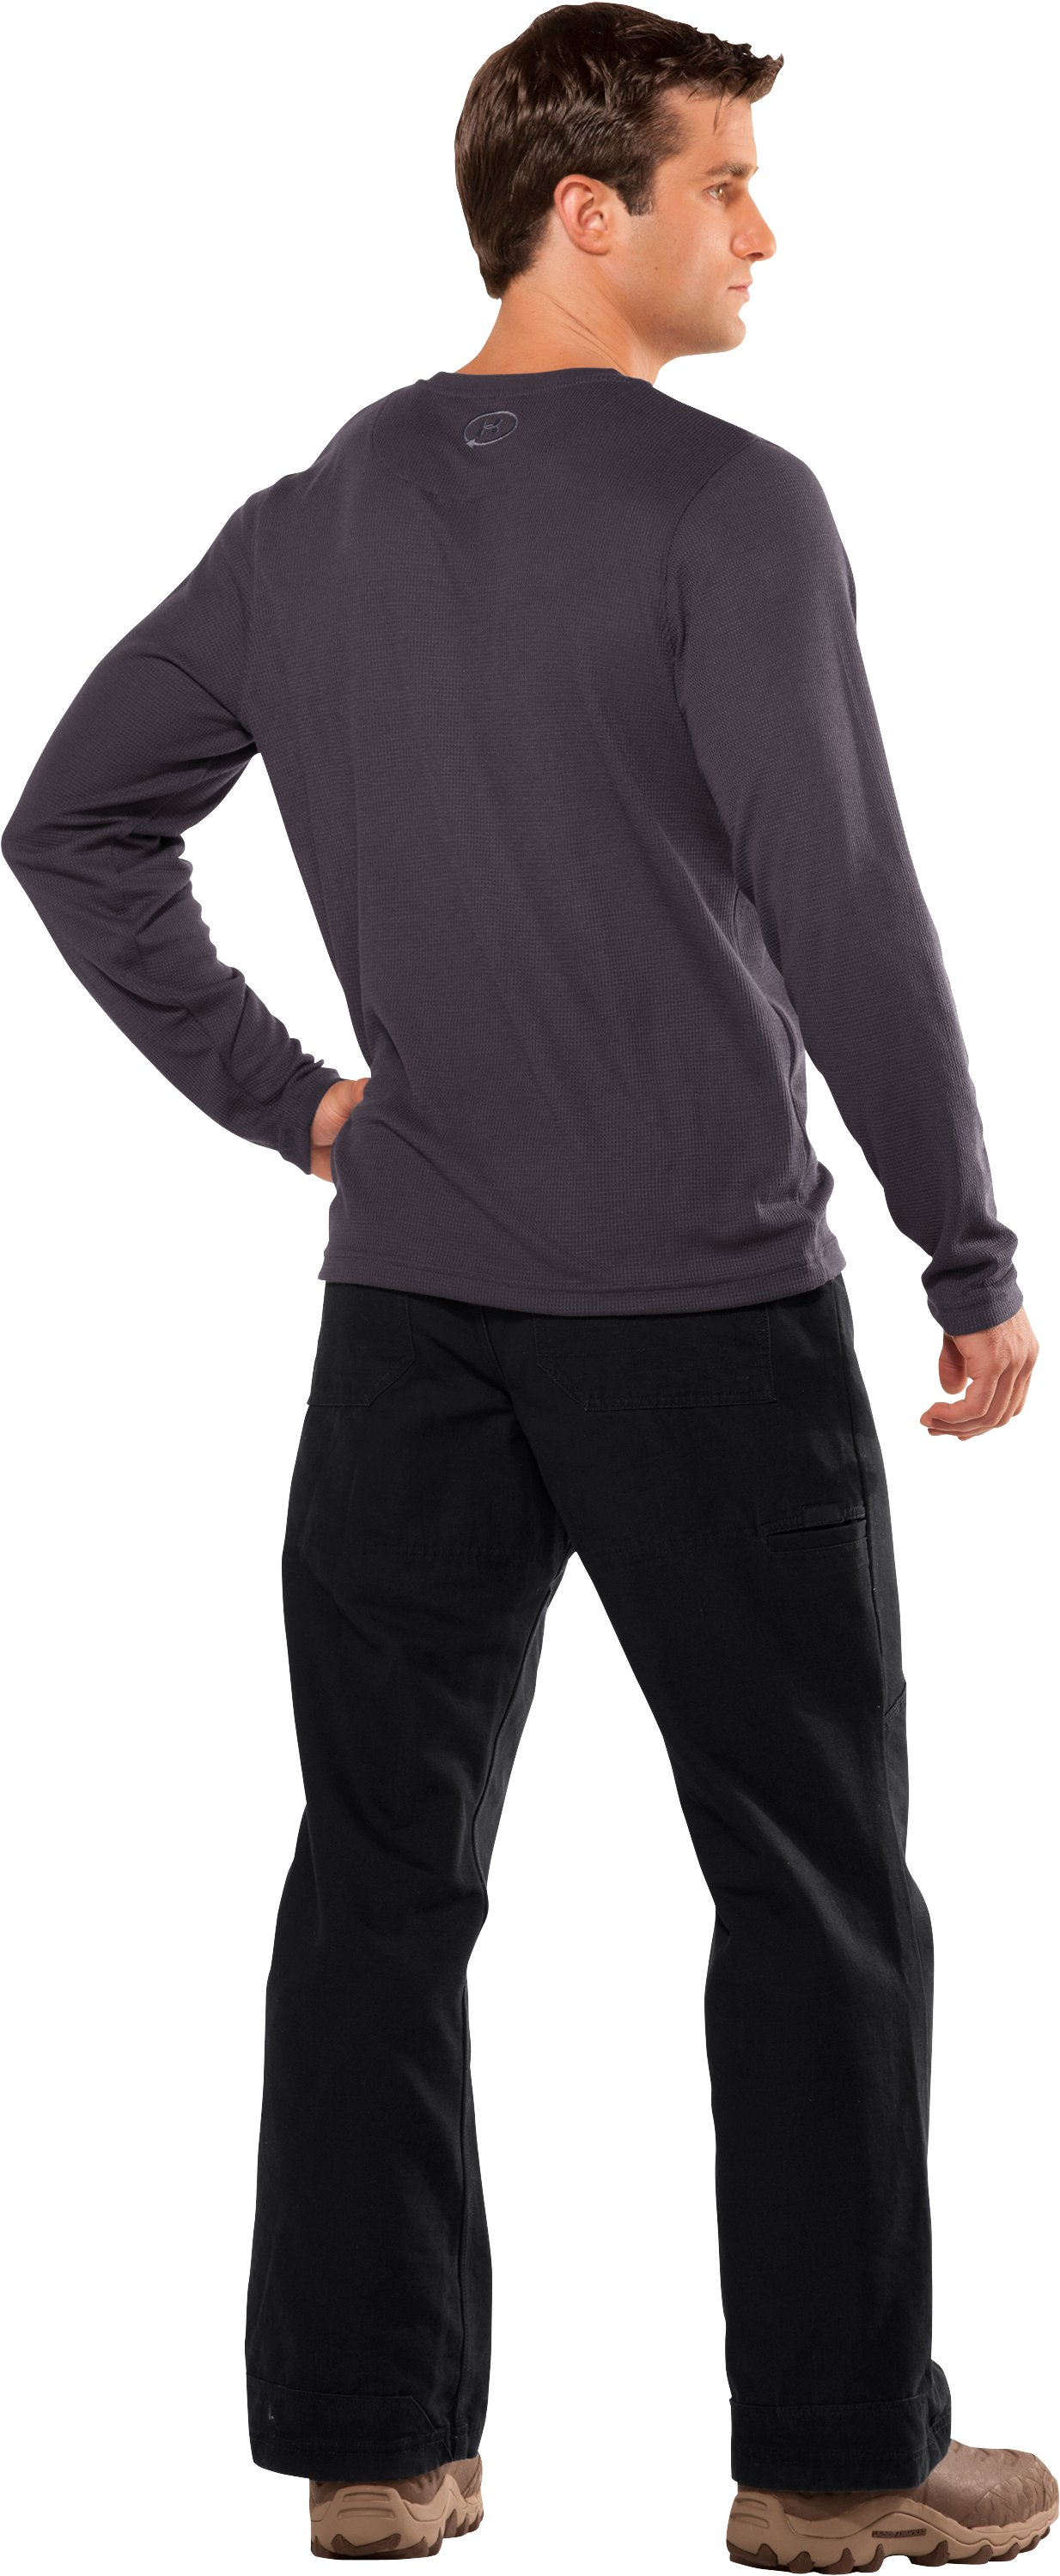 Men's Long Sleeve Waffle Crew, Charcoal, Back